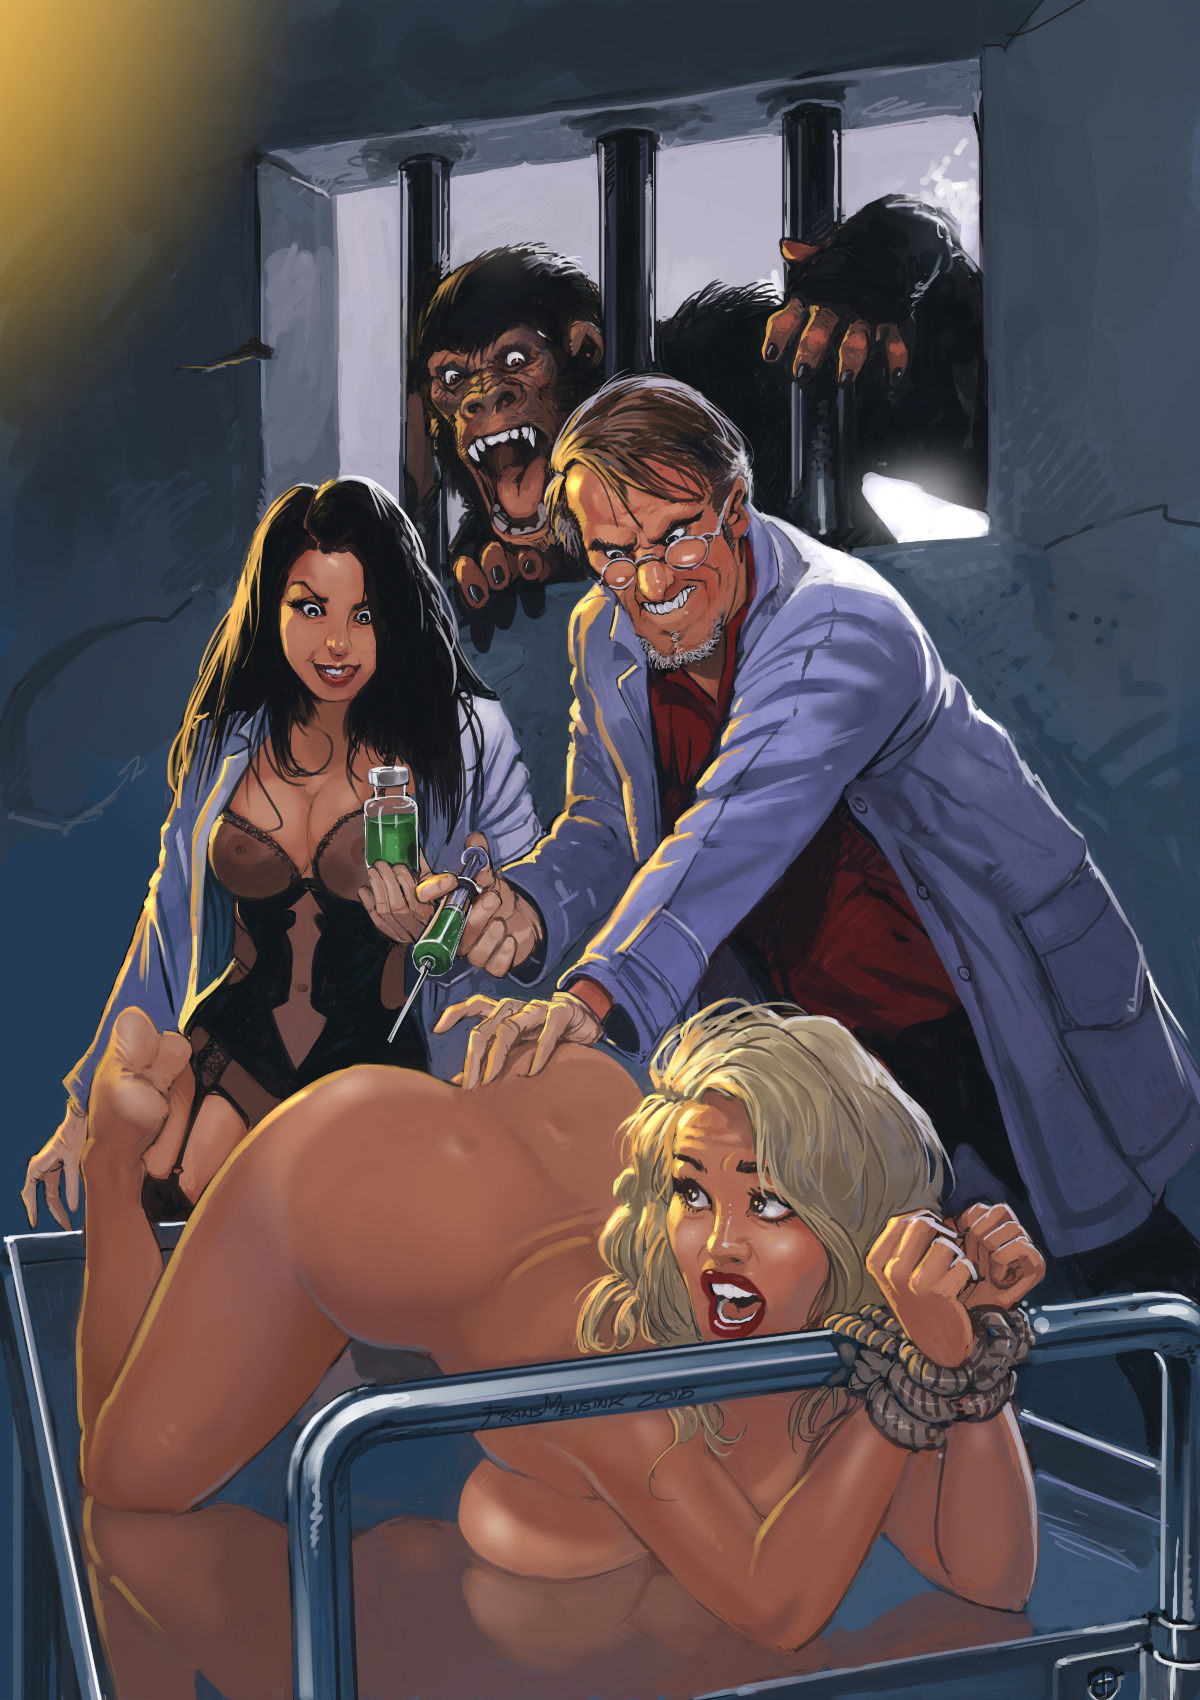 A distressed naked damsel is injected by mad scientists, while an enraged ape looks on.